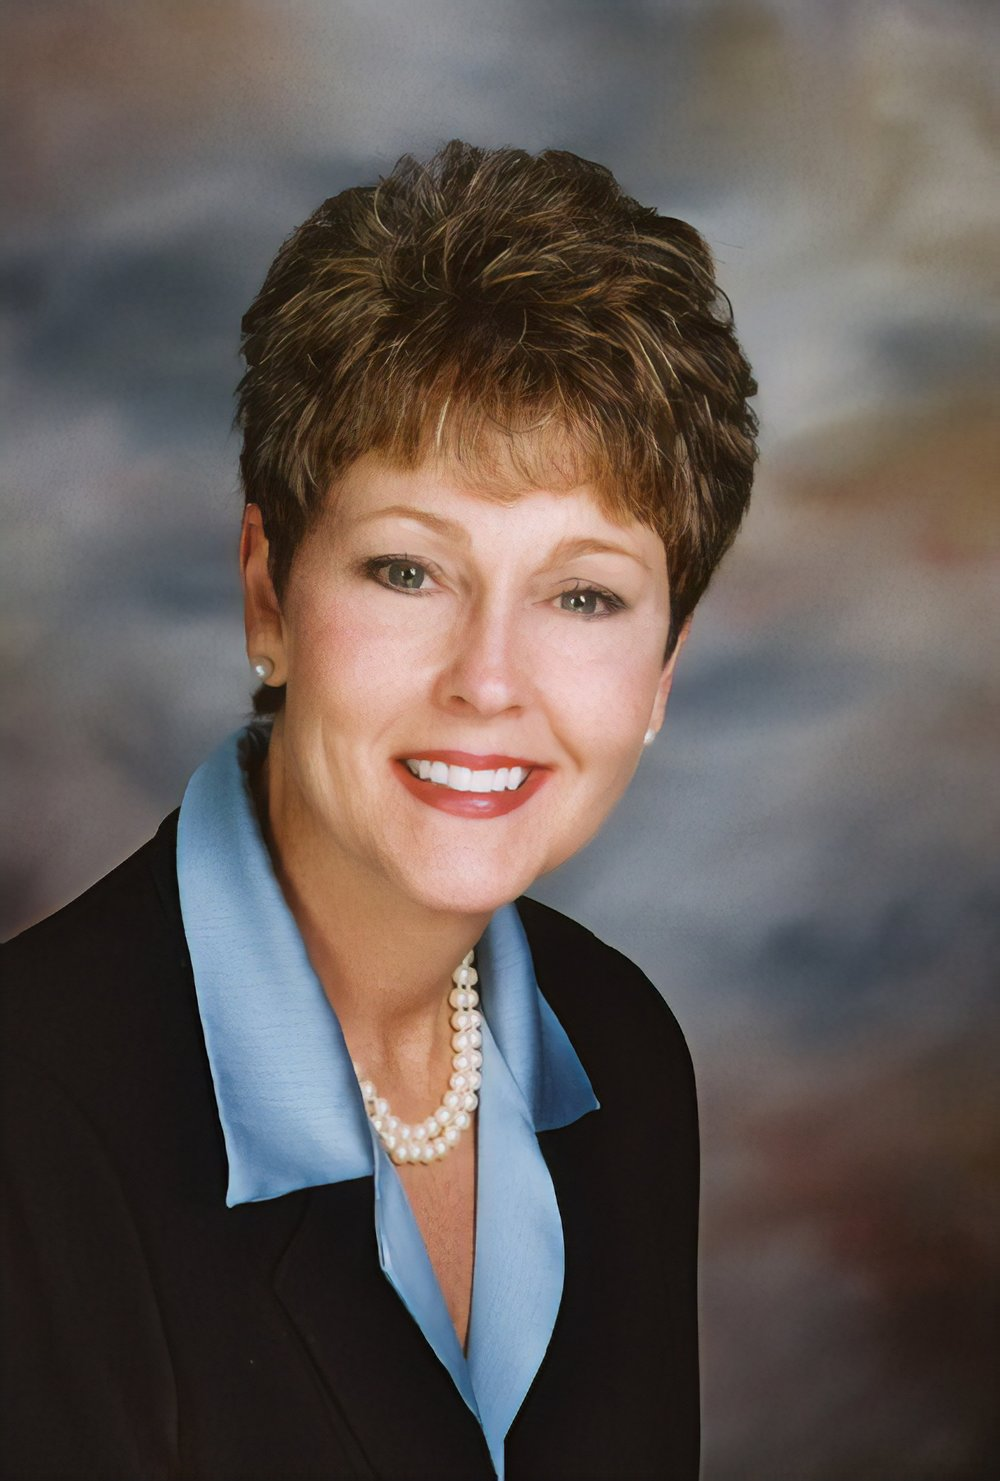 Elizabeth R. Ondriezek,Attorney at law - Elizabeth Roehrig Ondriezek is the founder and principal attorney at Elizabeth R. Ondriezek, P.A., a Jacksonville law firm serving individuals and families throughout Duval, Clay, Nassau and St. Johns counties in the areas of family law, divorce, adoption and juvenile law.